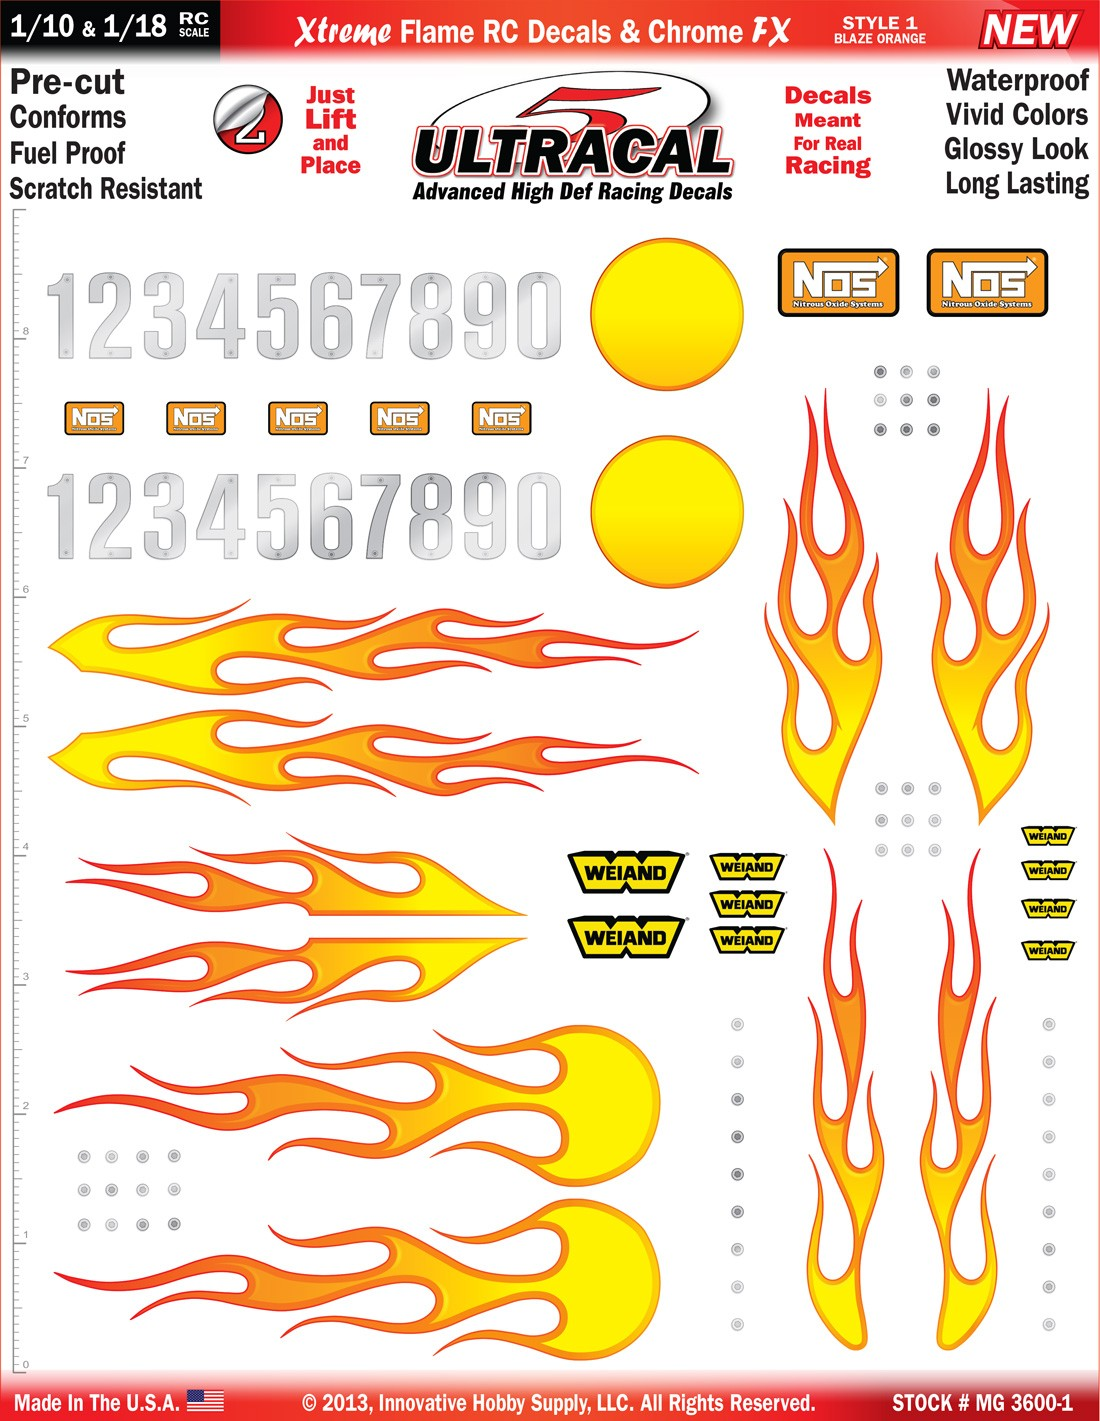 MG 3600-1 Ultracal Xtreme Flame RC Decals & Chrome FX Decals for 1:10 and 1:18 Scale